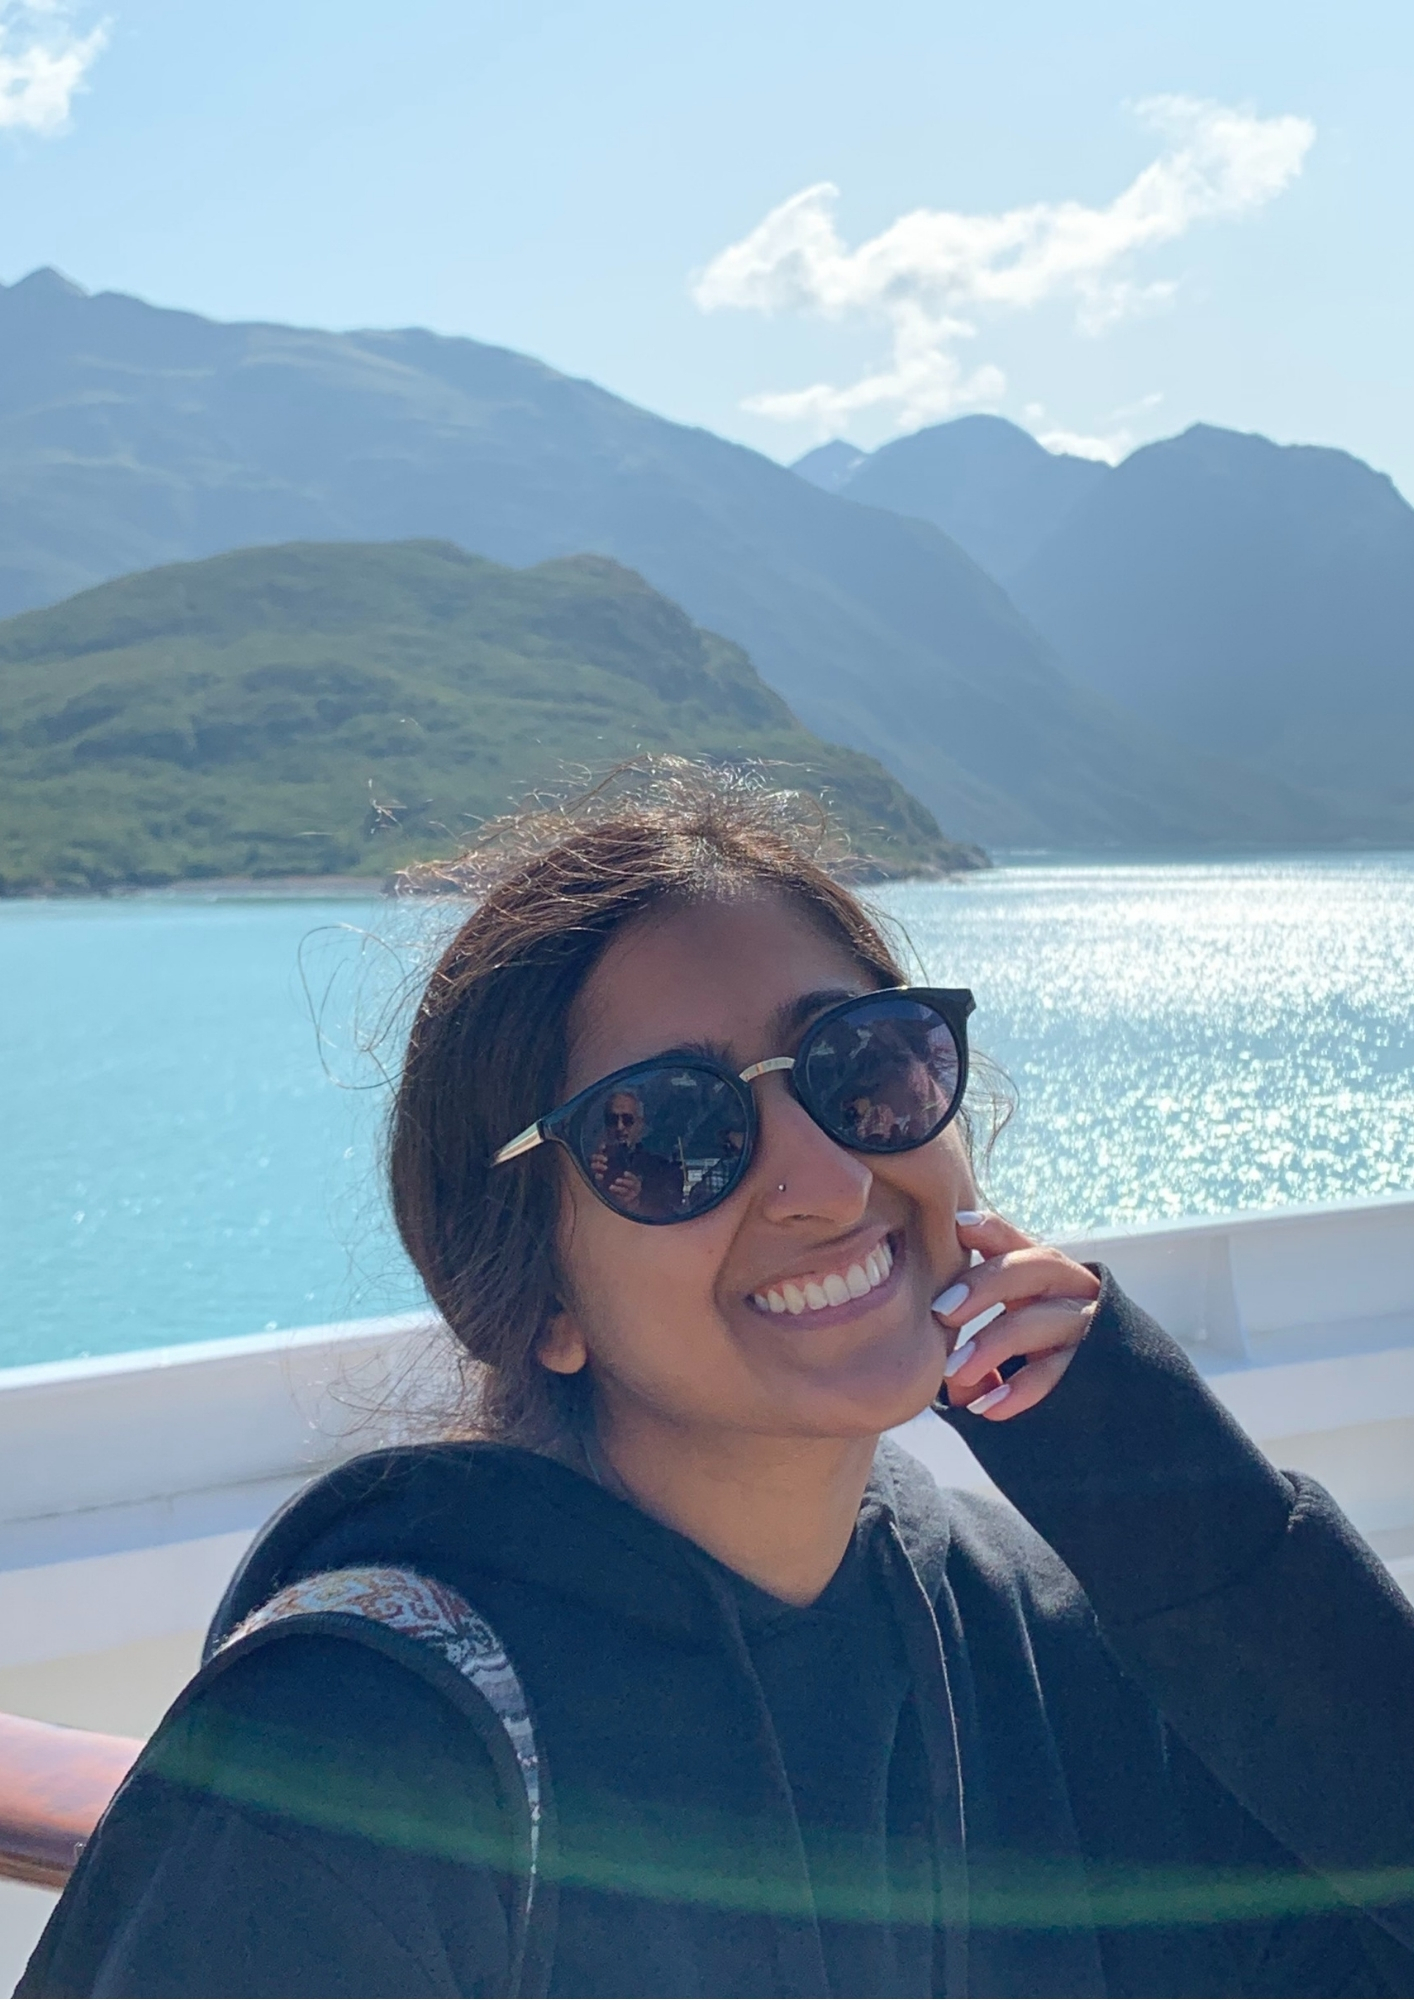 Celina smiling wearing sunglasses by a lake